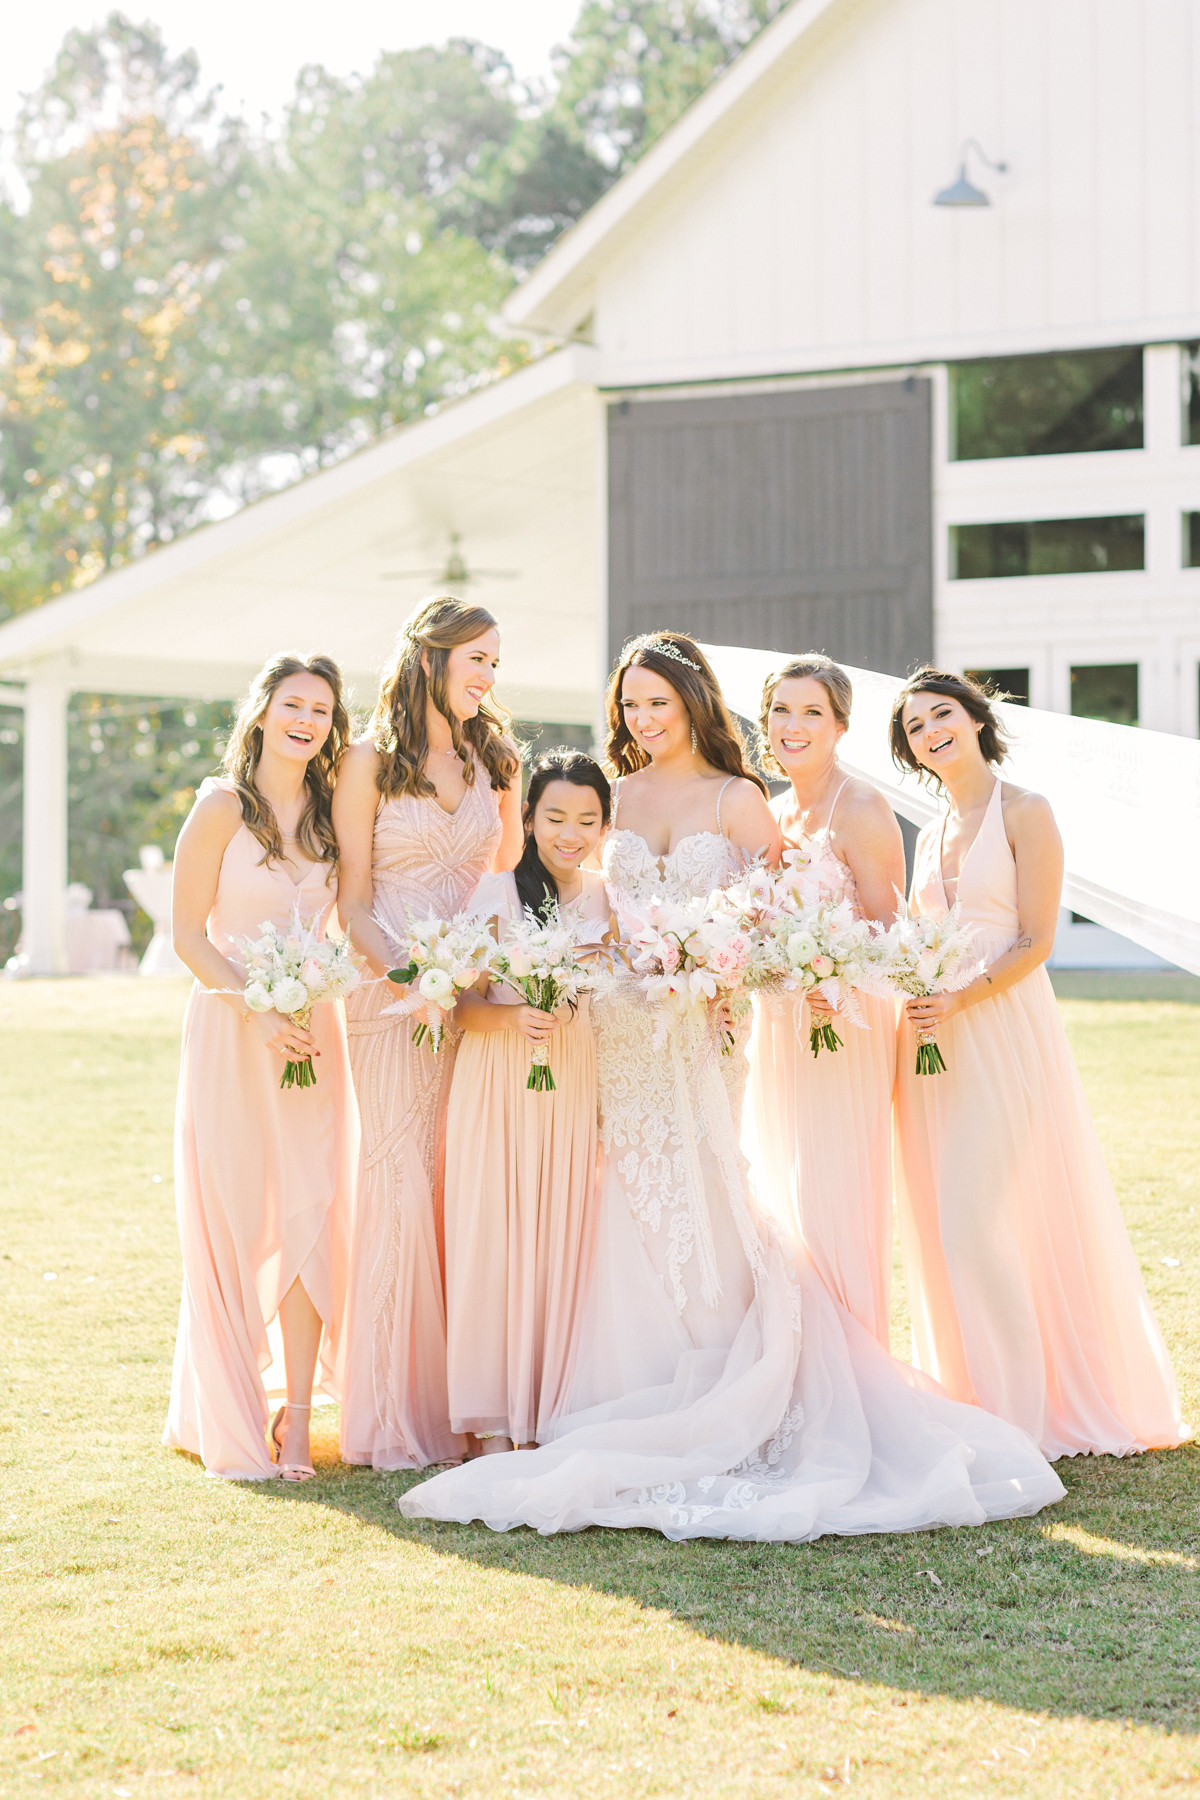 Jesse + Brooke's Southern Chic Wedding at The Venue at Daisy Hill